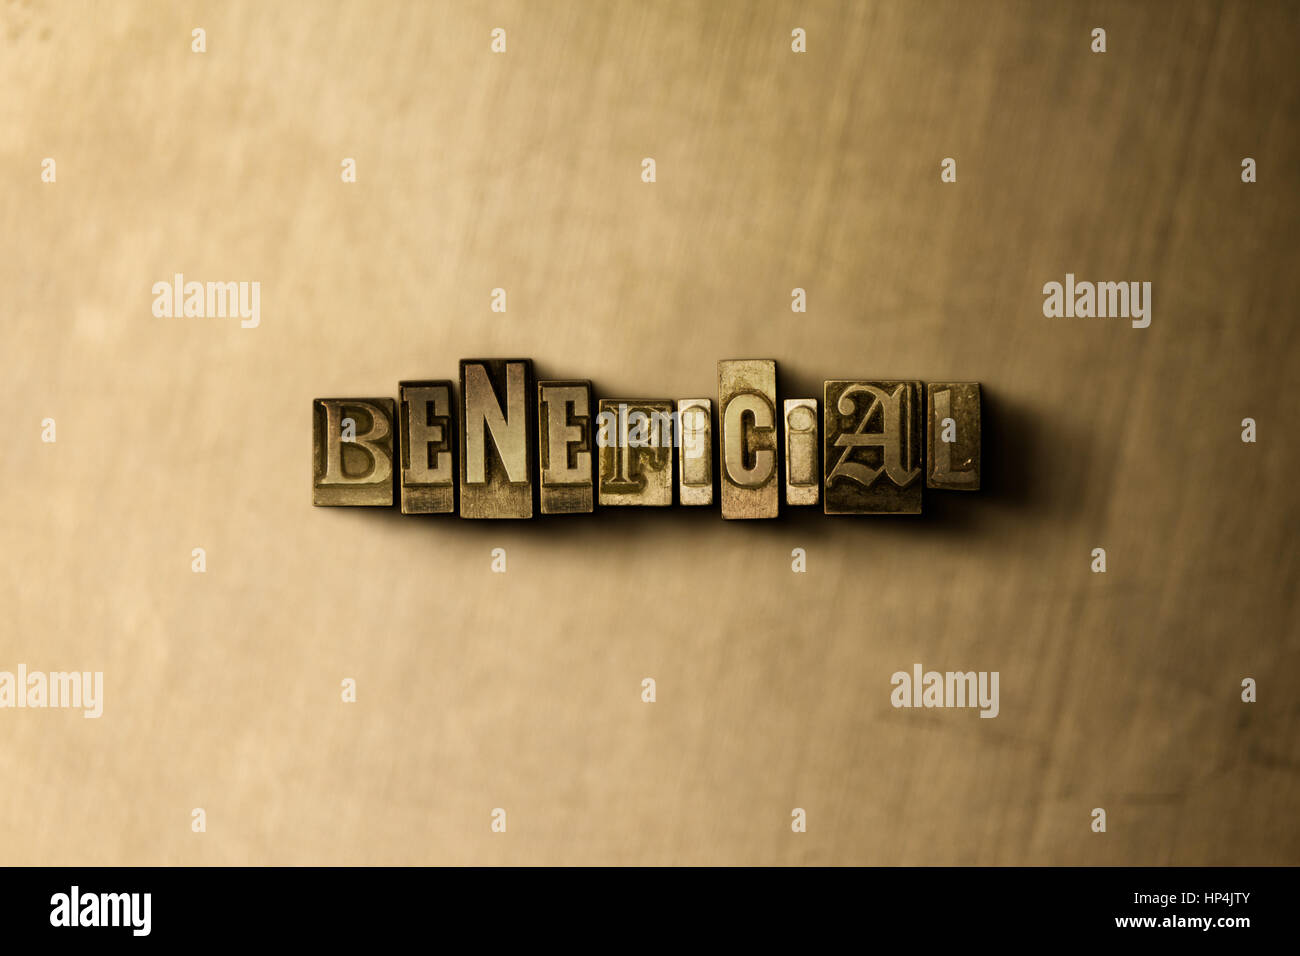 BENEFICIAL - close-up of grungy vintage typeset word on metal backdrop. Royalty free stock illustration.  Can be - Stock Image